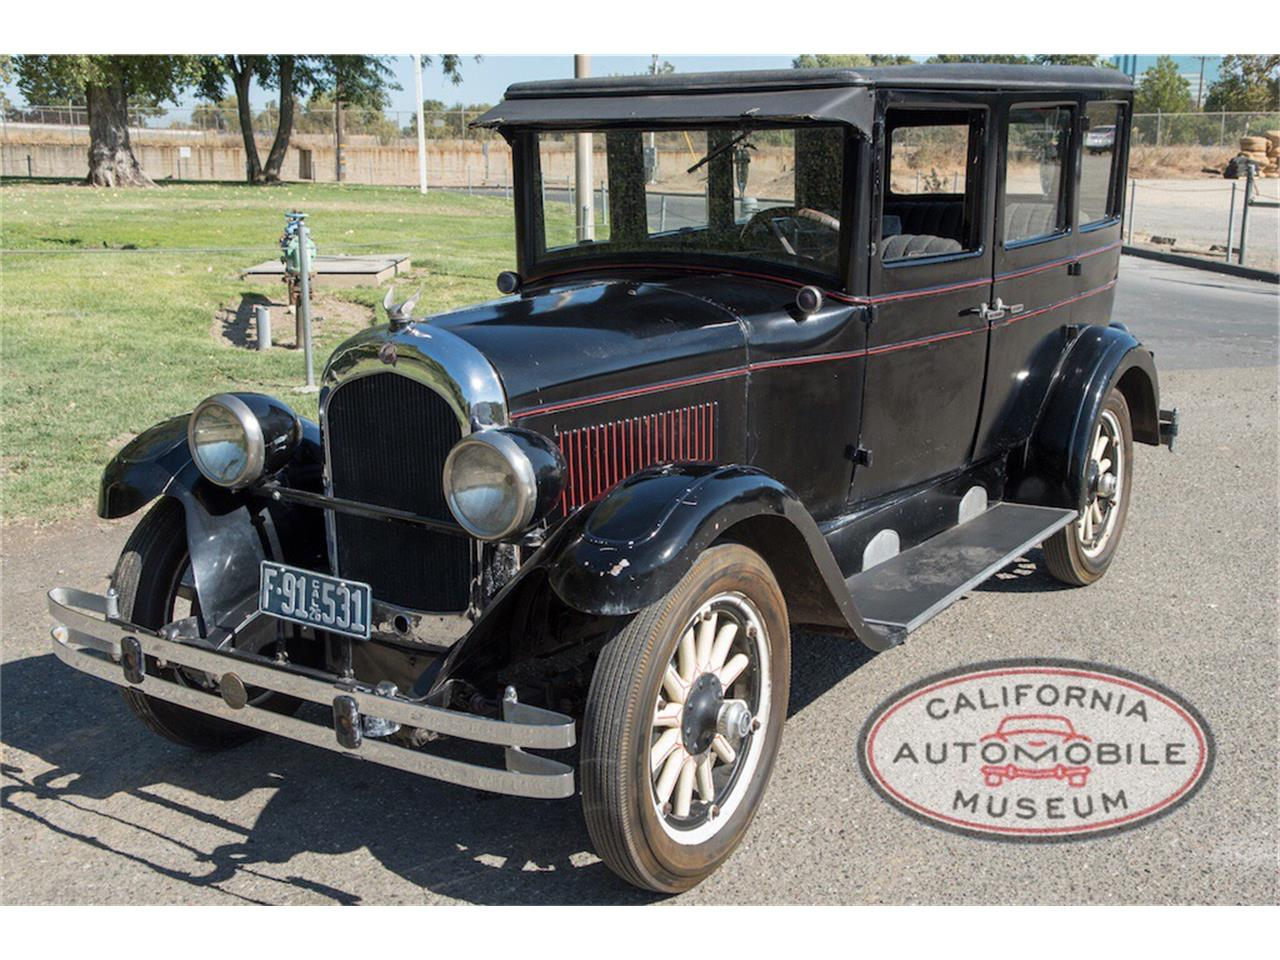 1926 Chrysler Series 60 Sedan for Sale   ClassicCars com   CC 909929 Large Picture of  26 Series 60 Sedan   JI3T